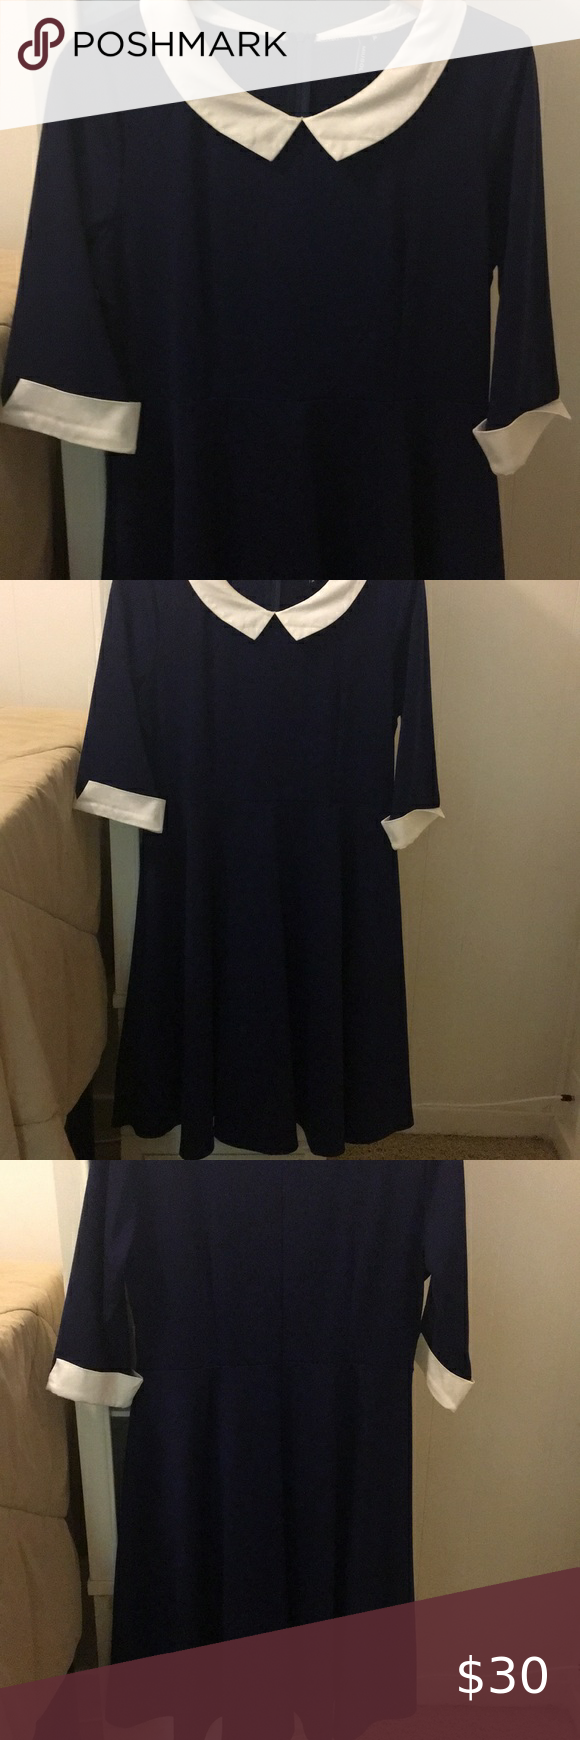 Navy Dress With White Collar And Cuffs Navy Dress Collar And Cuff Cocktail Party Dress [ 1740 x 580 Pixel ]